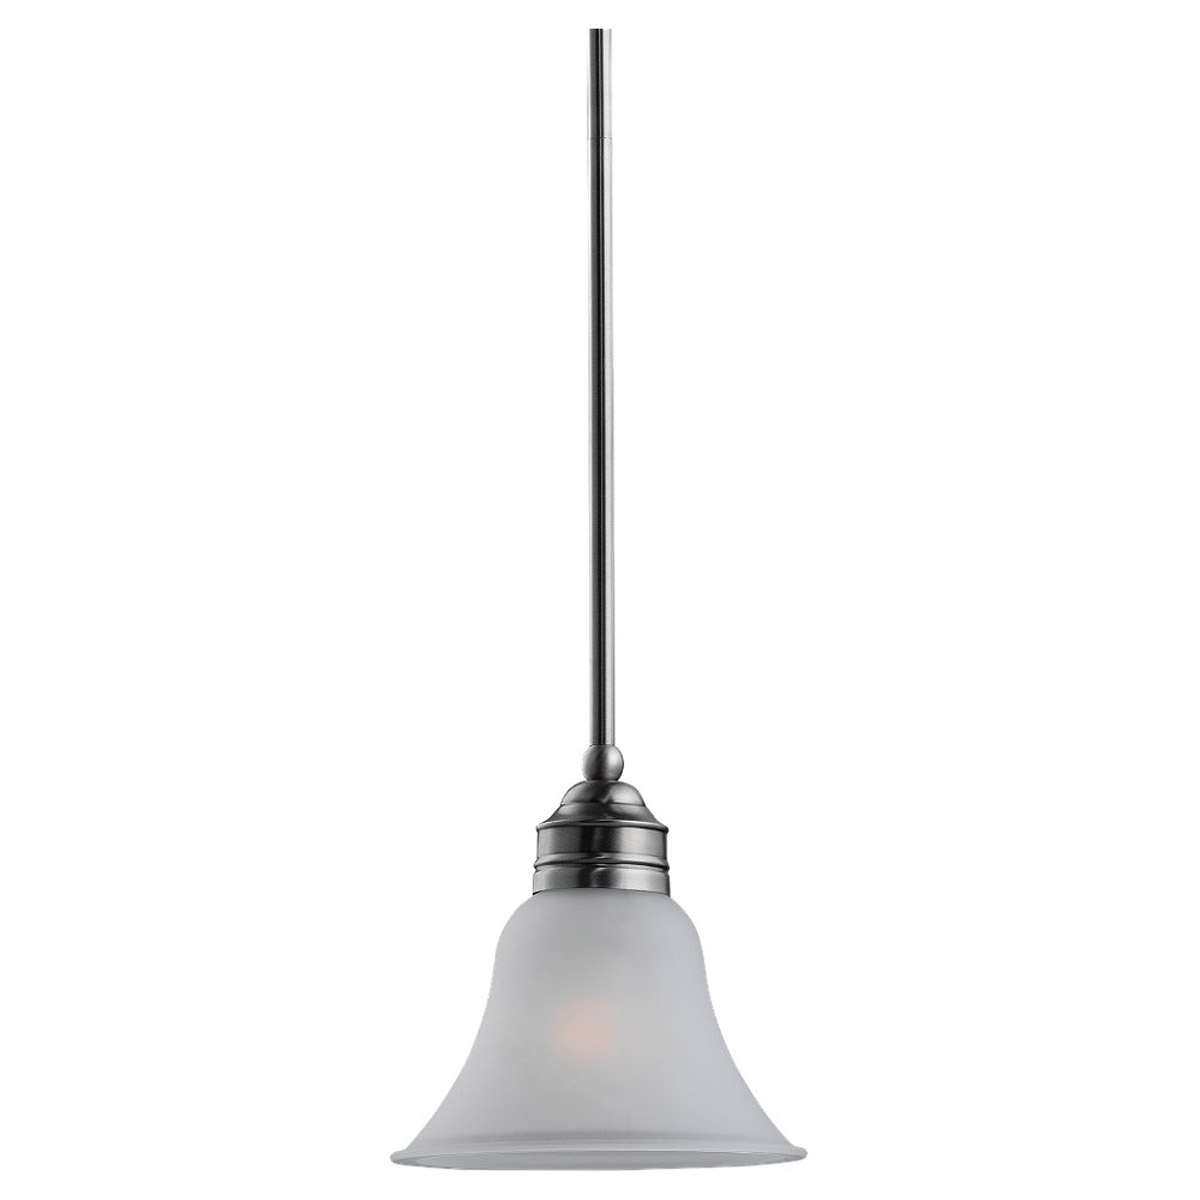 Sea Gull Lighting Gladstone 1 Light Mini Pendant in Antique Brushed Nickel 61850-965